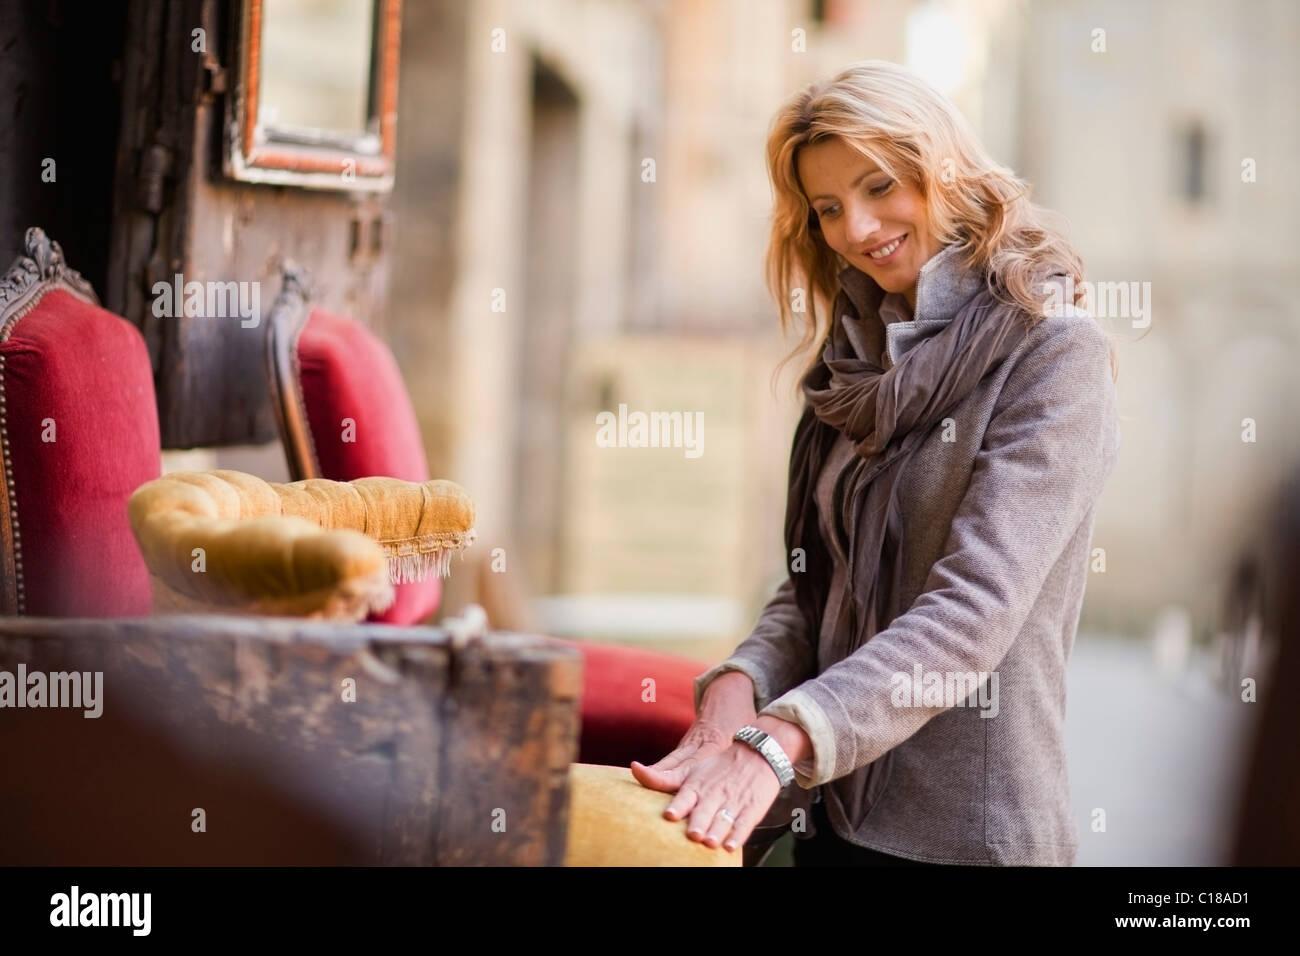 Woman marveling at antique furniture - Stock Image